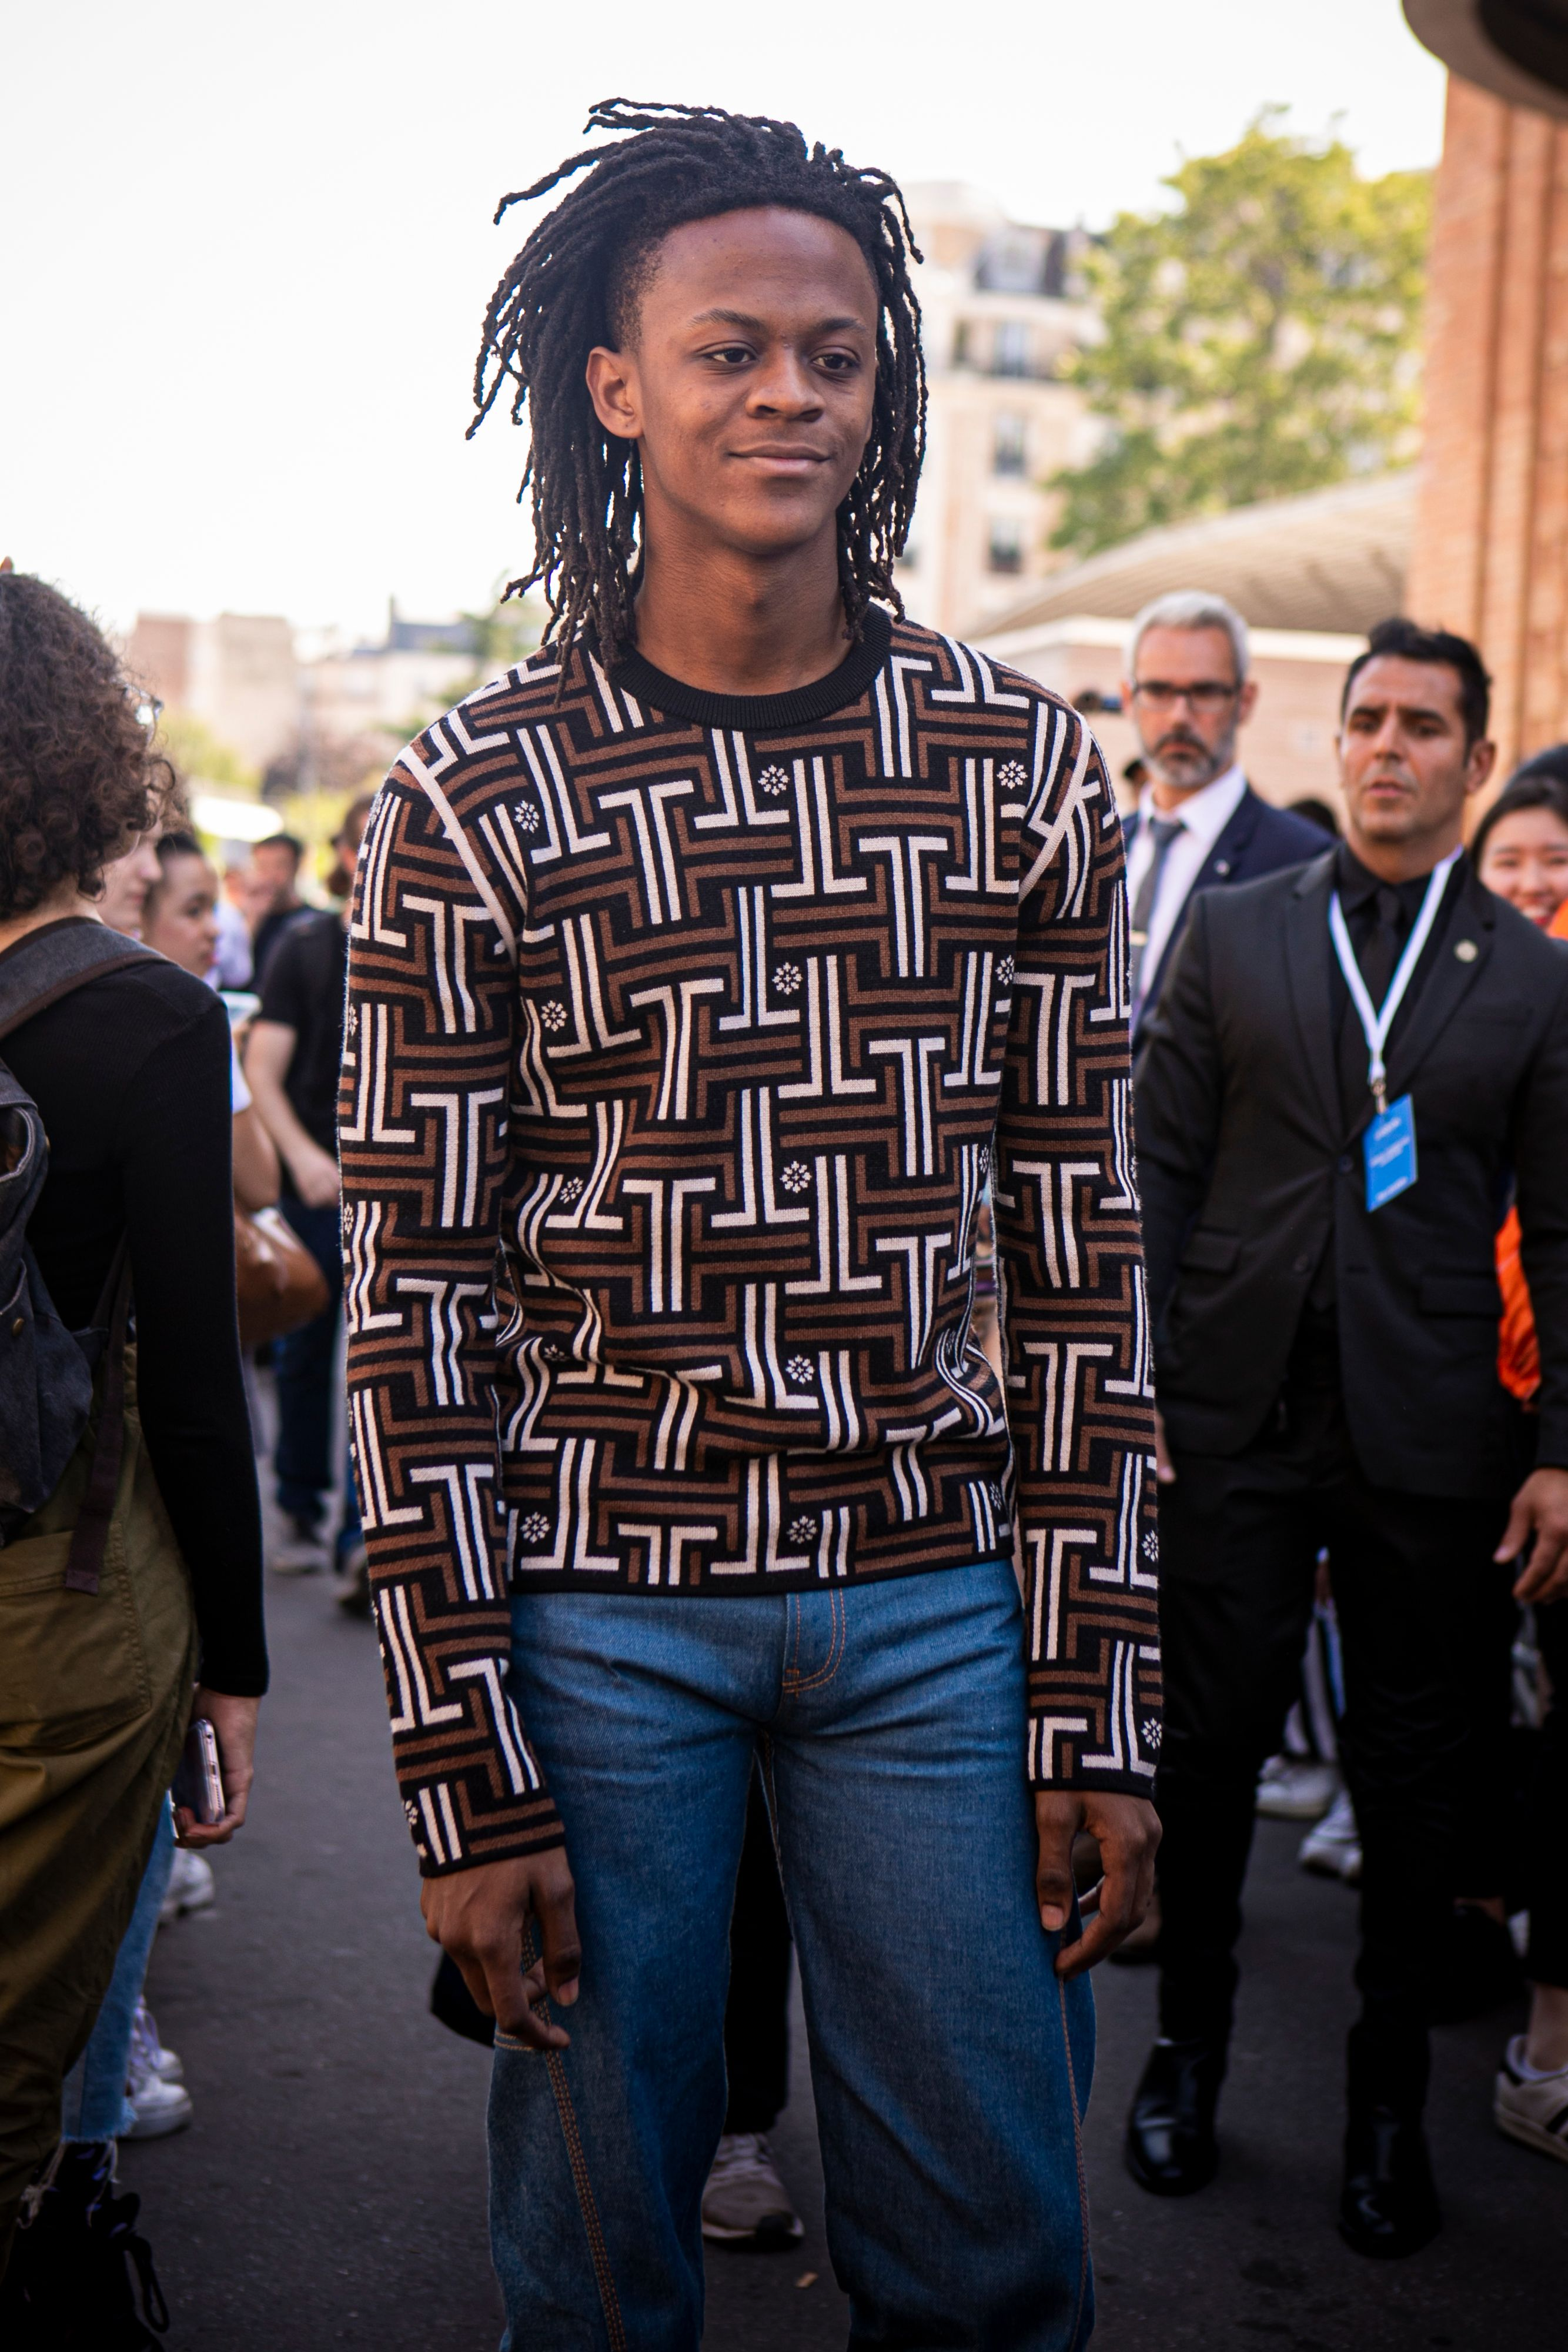 Myles B. O'Neal at the Lanvin fashion show during Paris Fashion Week Spring/Summer 2020 in June 2019 in Paris, France | Source: Getty Images